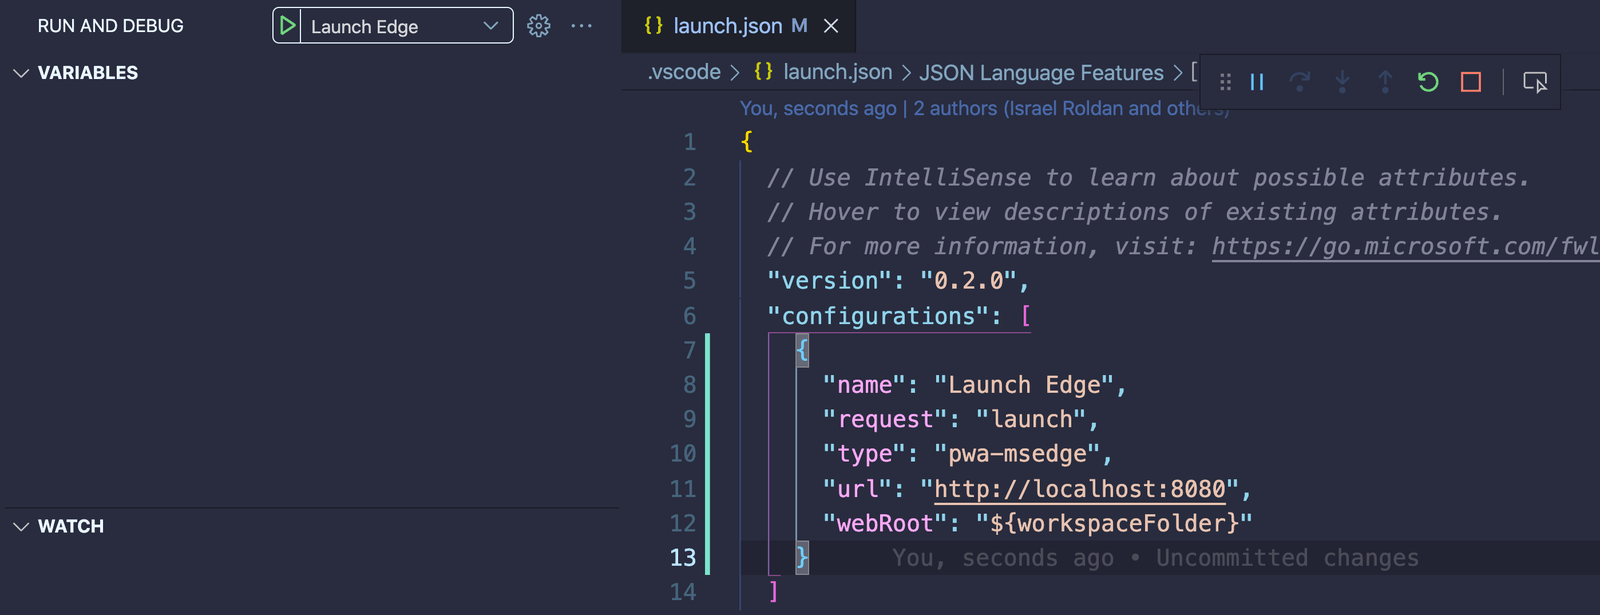 """Setting up  """"type"""":  """"pwa-edge"""" in launch.json enables browser debugging for Edge"""